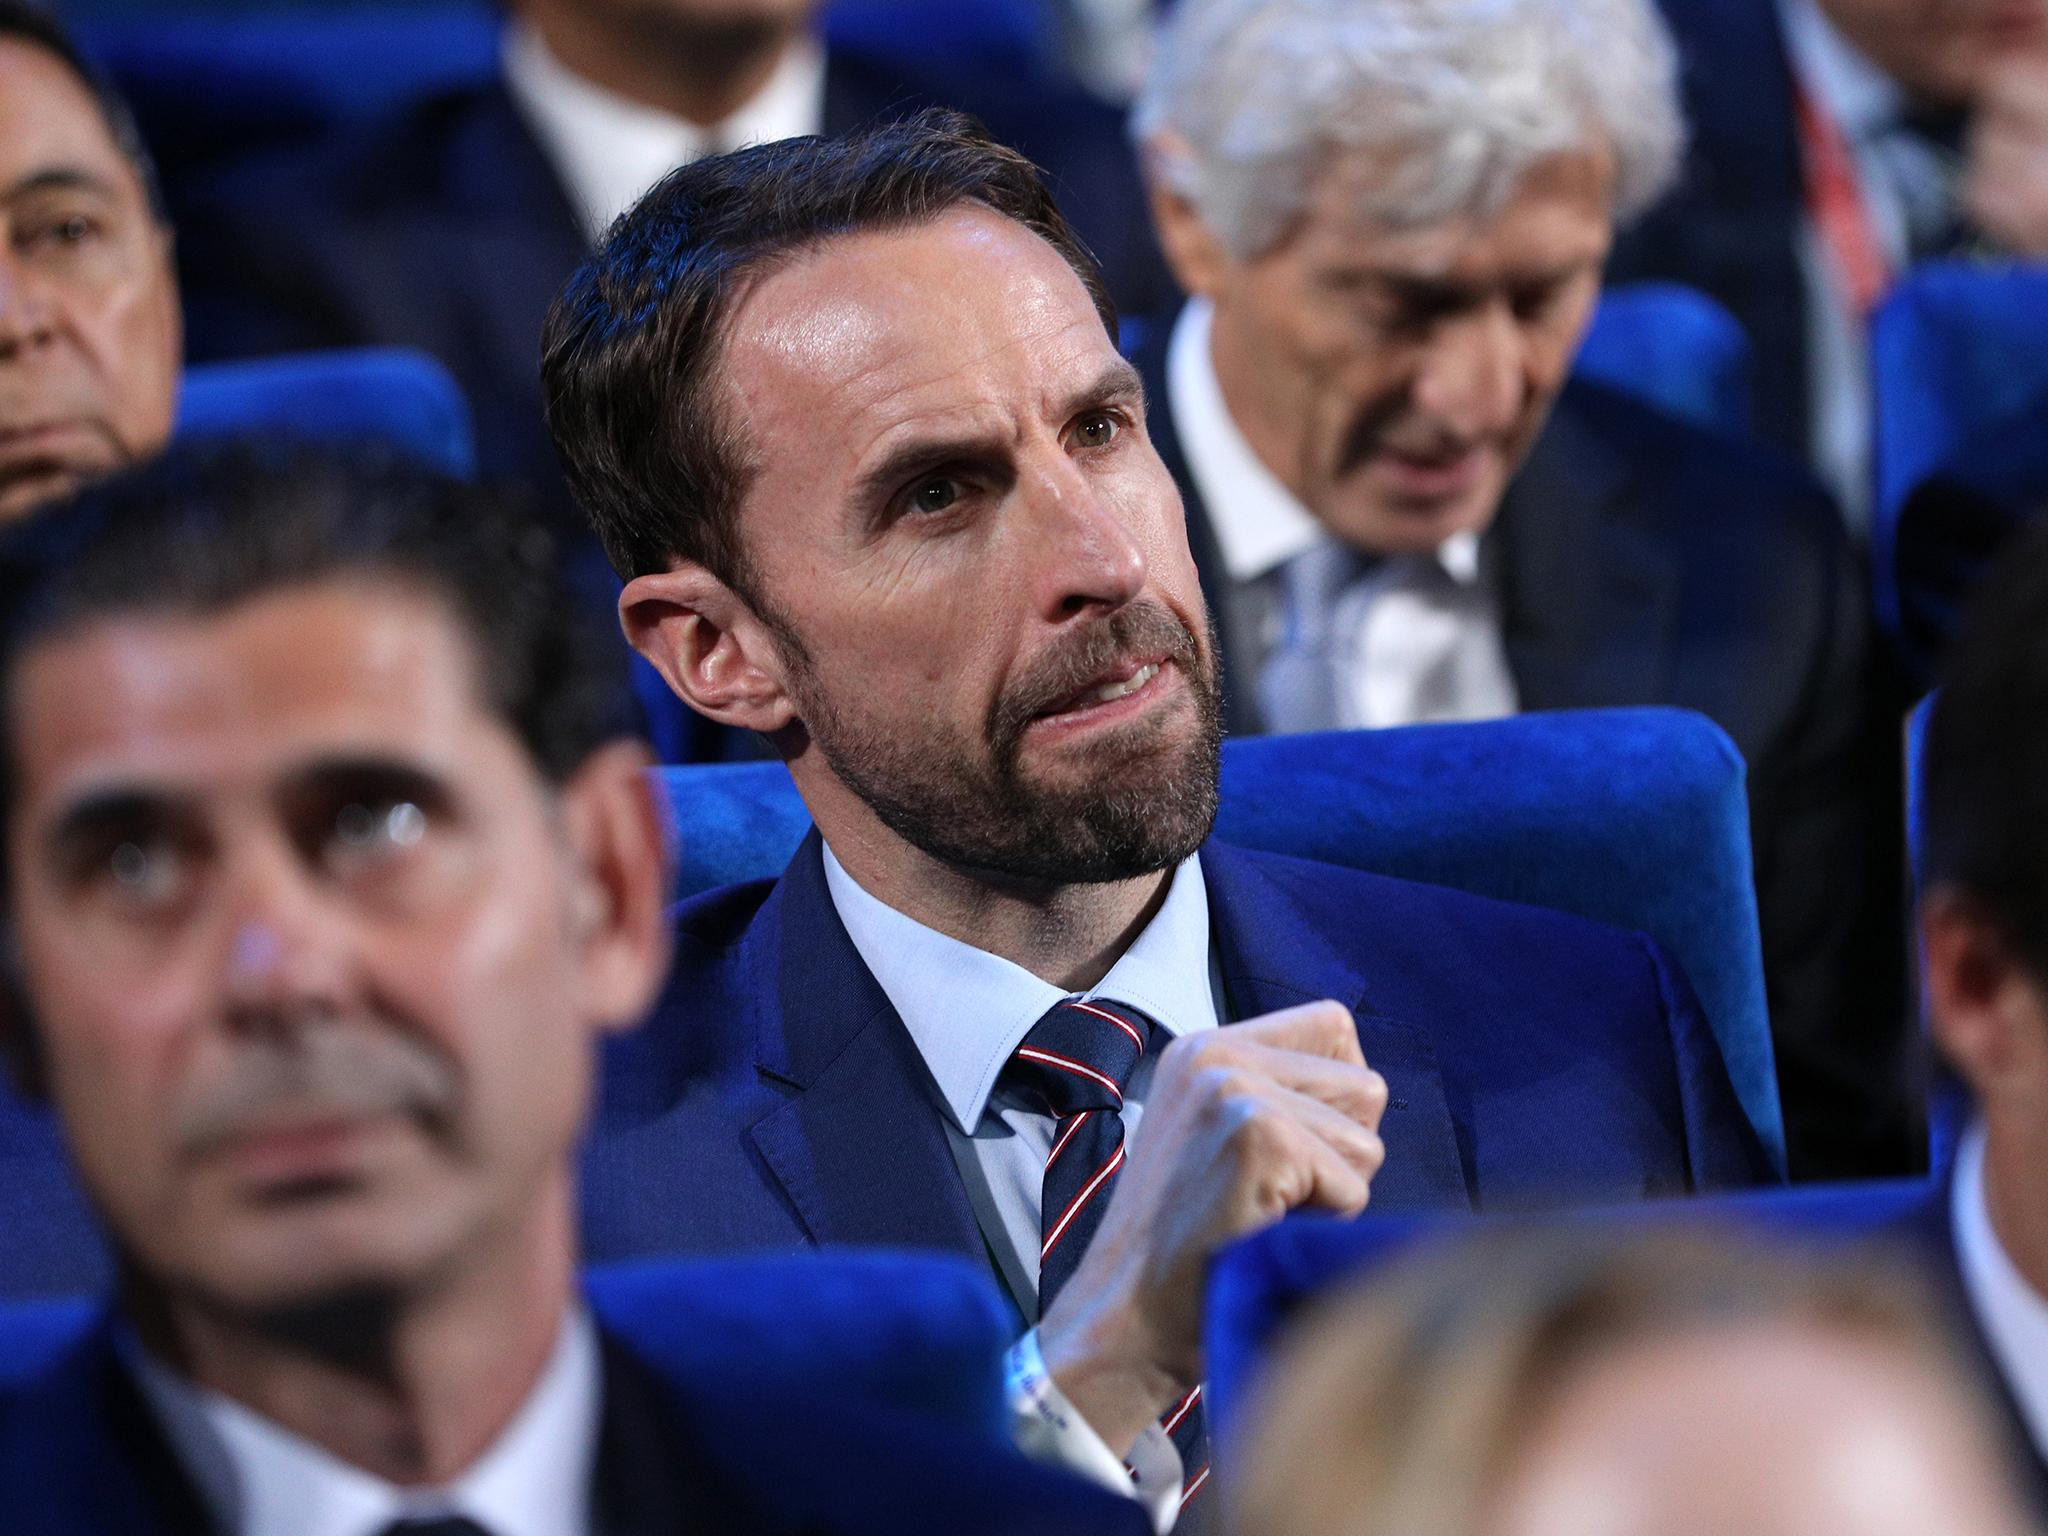 Gareth Southgate spending his evenings reading up on 2018 World Cup opponents Panama and Tunisia